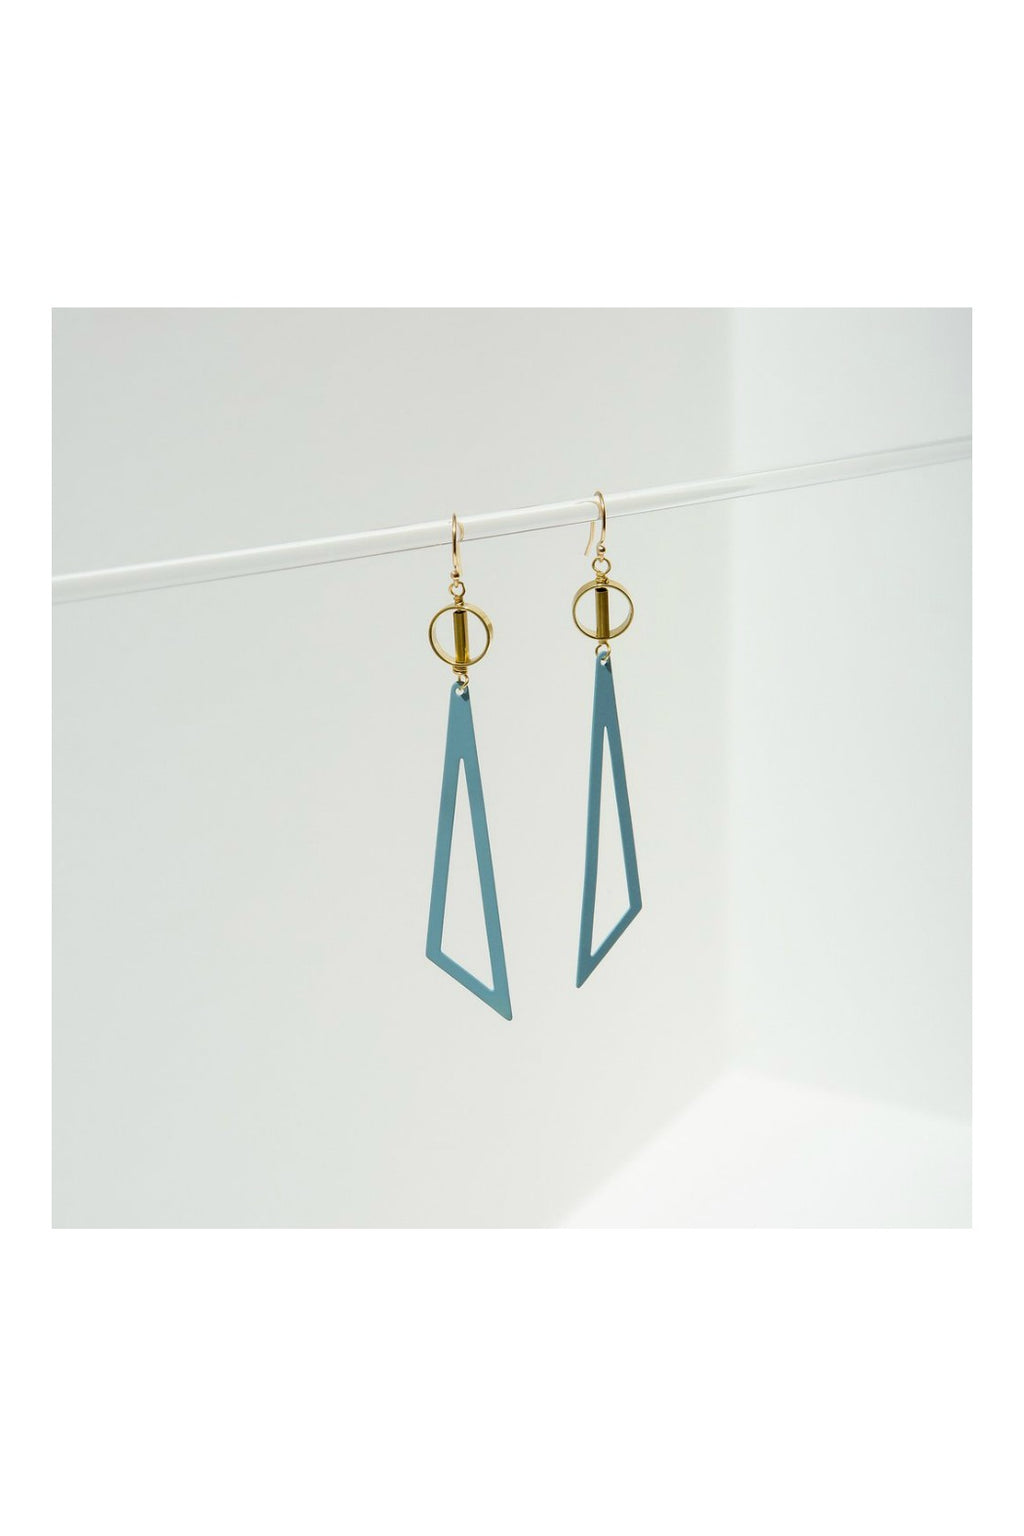 Larissa Loden Tilde Earrings - Blue